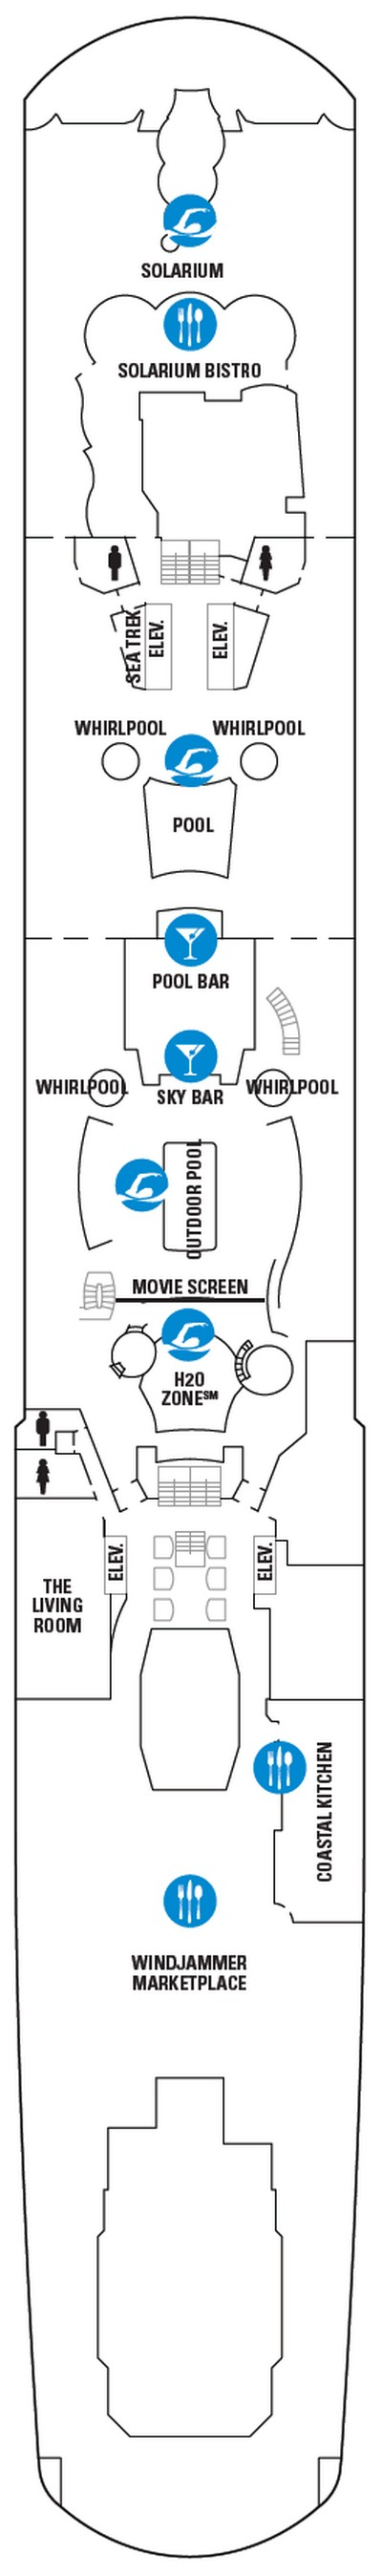 Ovation of the Seas Deck 14 layout